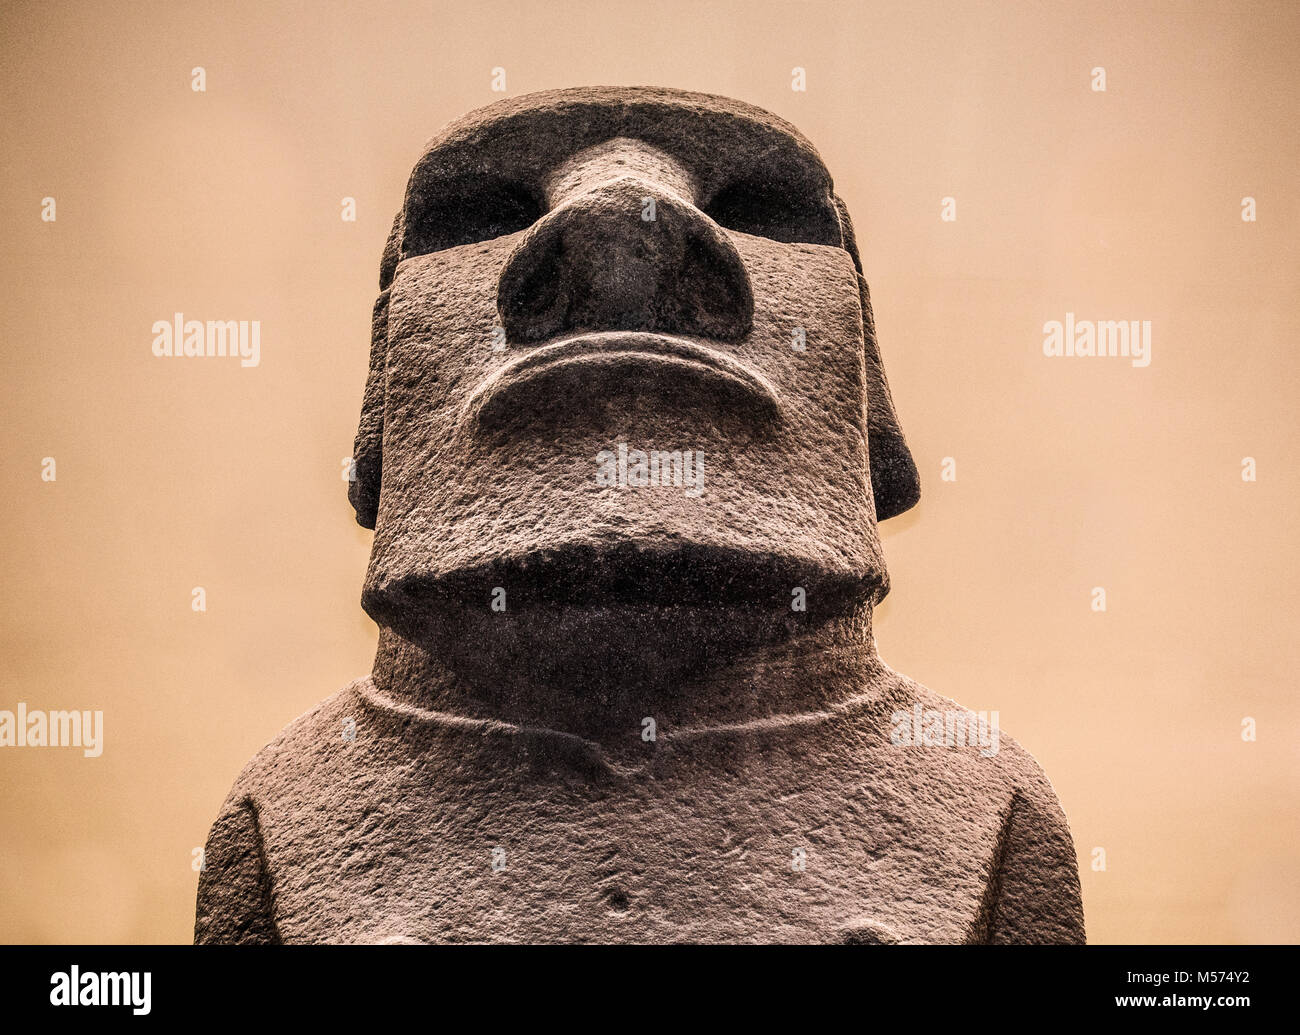 Hoa Hakananai'a - name of basalt-made human statue / sculpture (moai). Removed from Easter Island in 19th century. - Stock Image